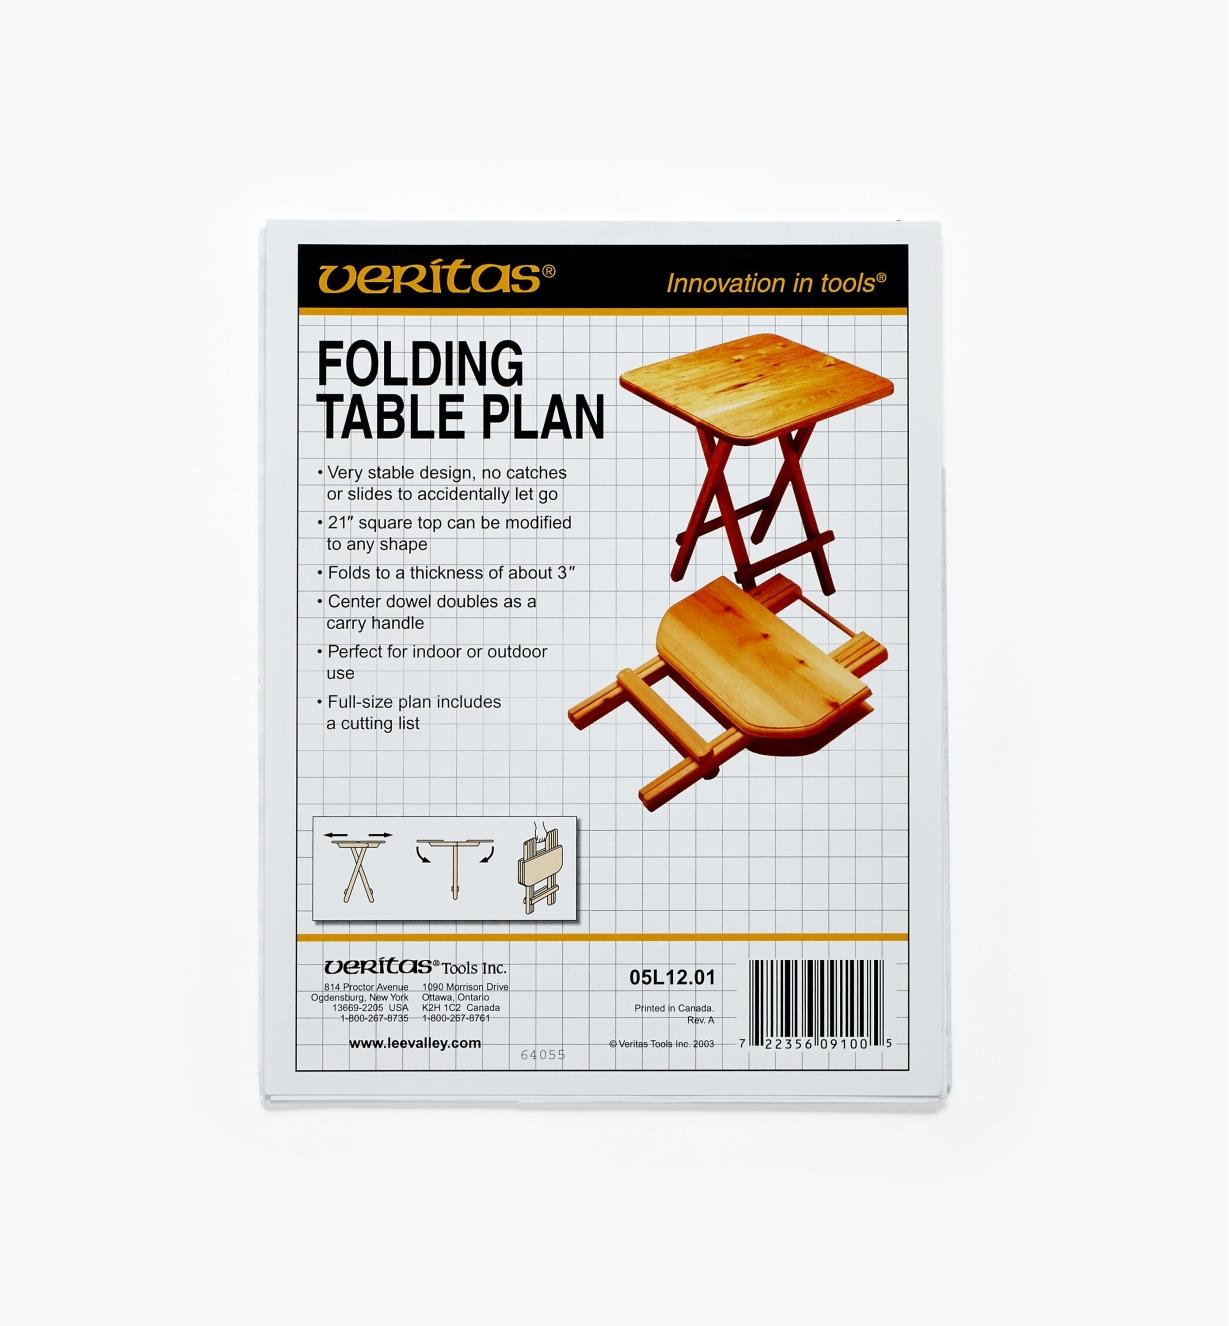 05L1201 - Folding Table Plan